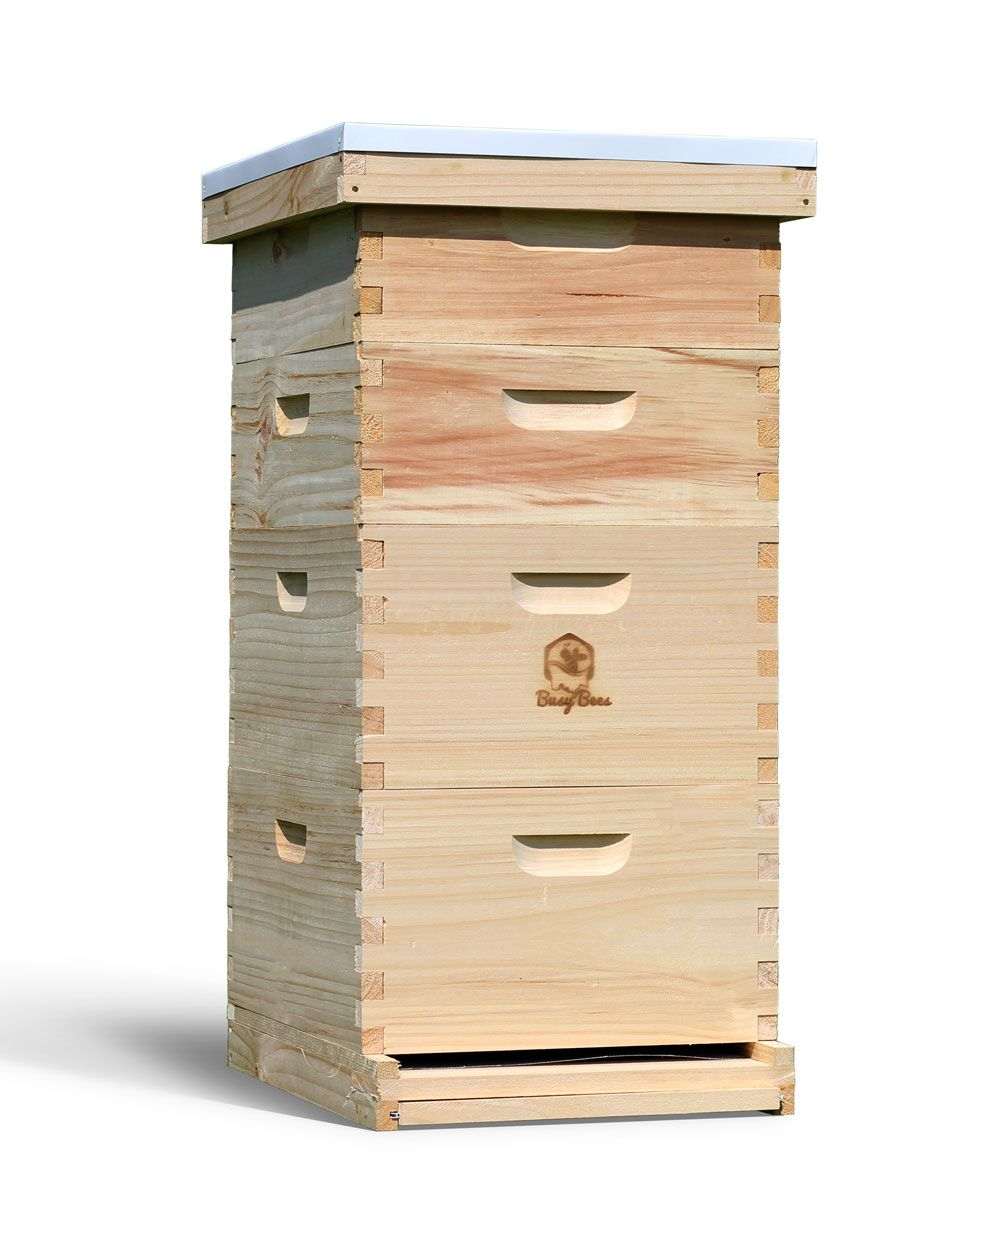 Complete Honey Production Bee Hive Kit For Beekeepers Free Shipping Bee Hive Kits Bee Keeping Beekeeping Frames